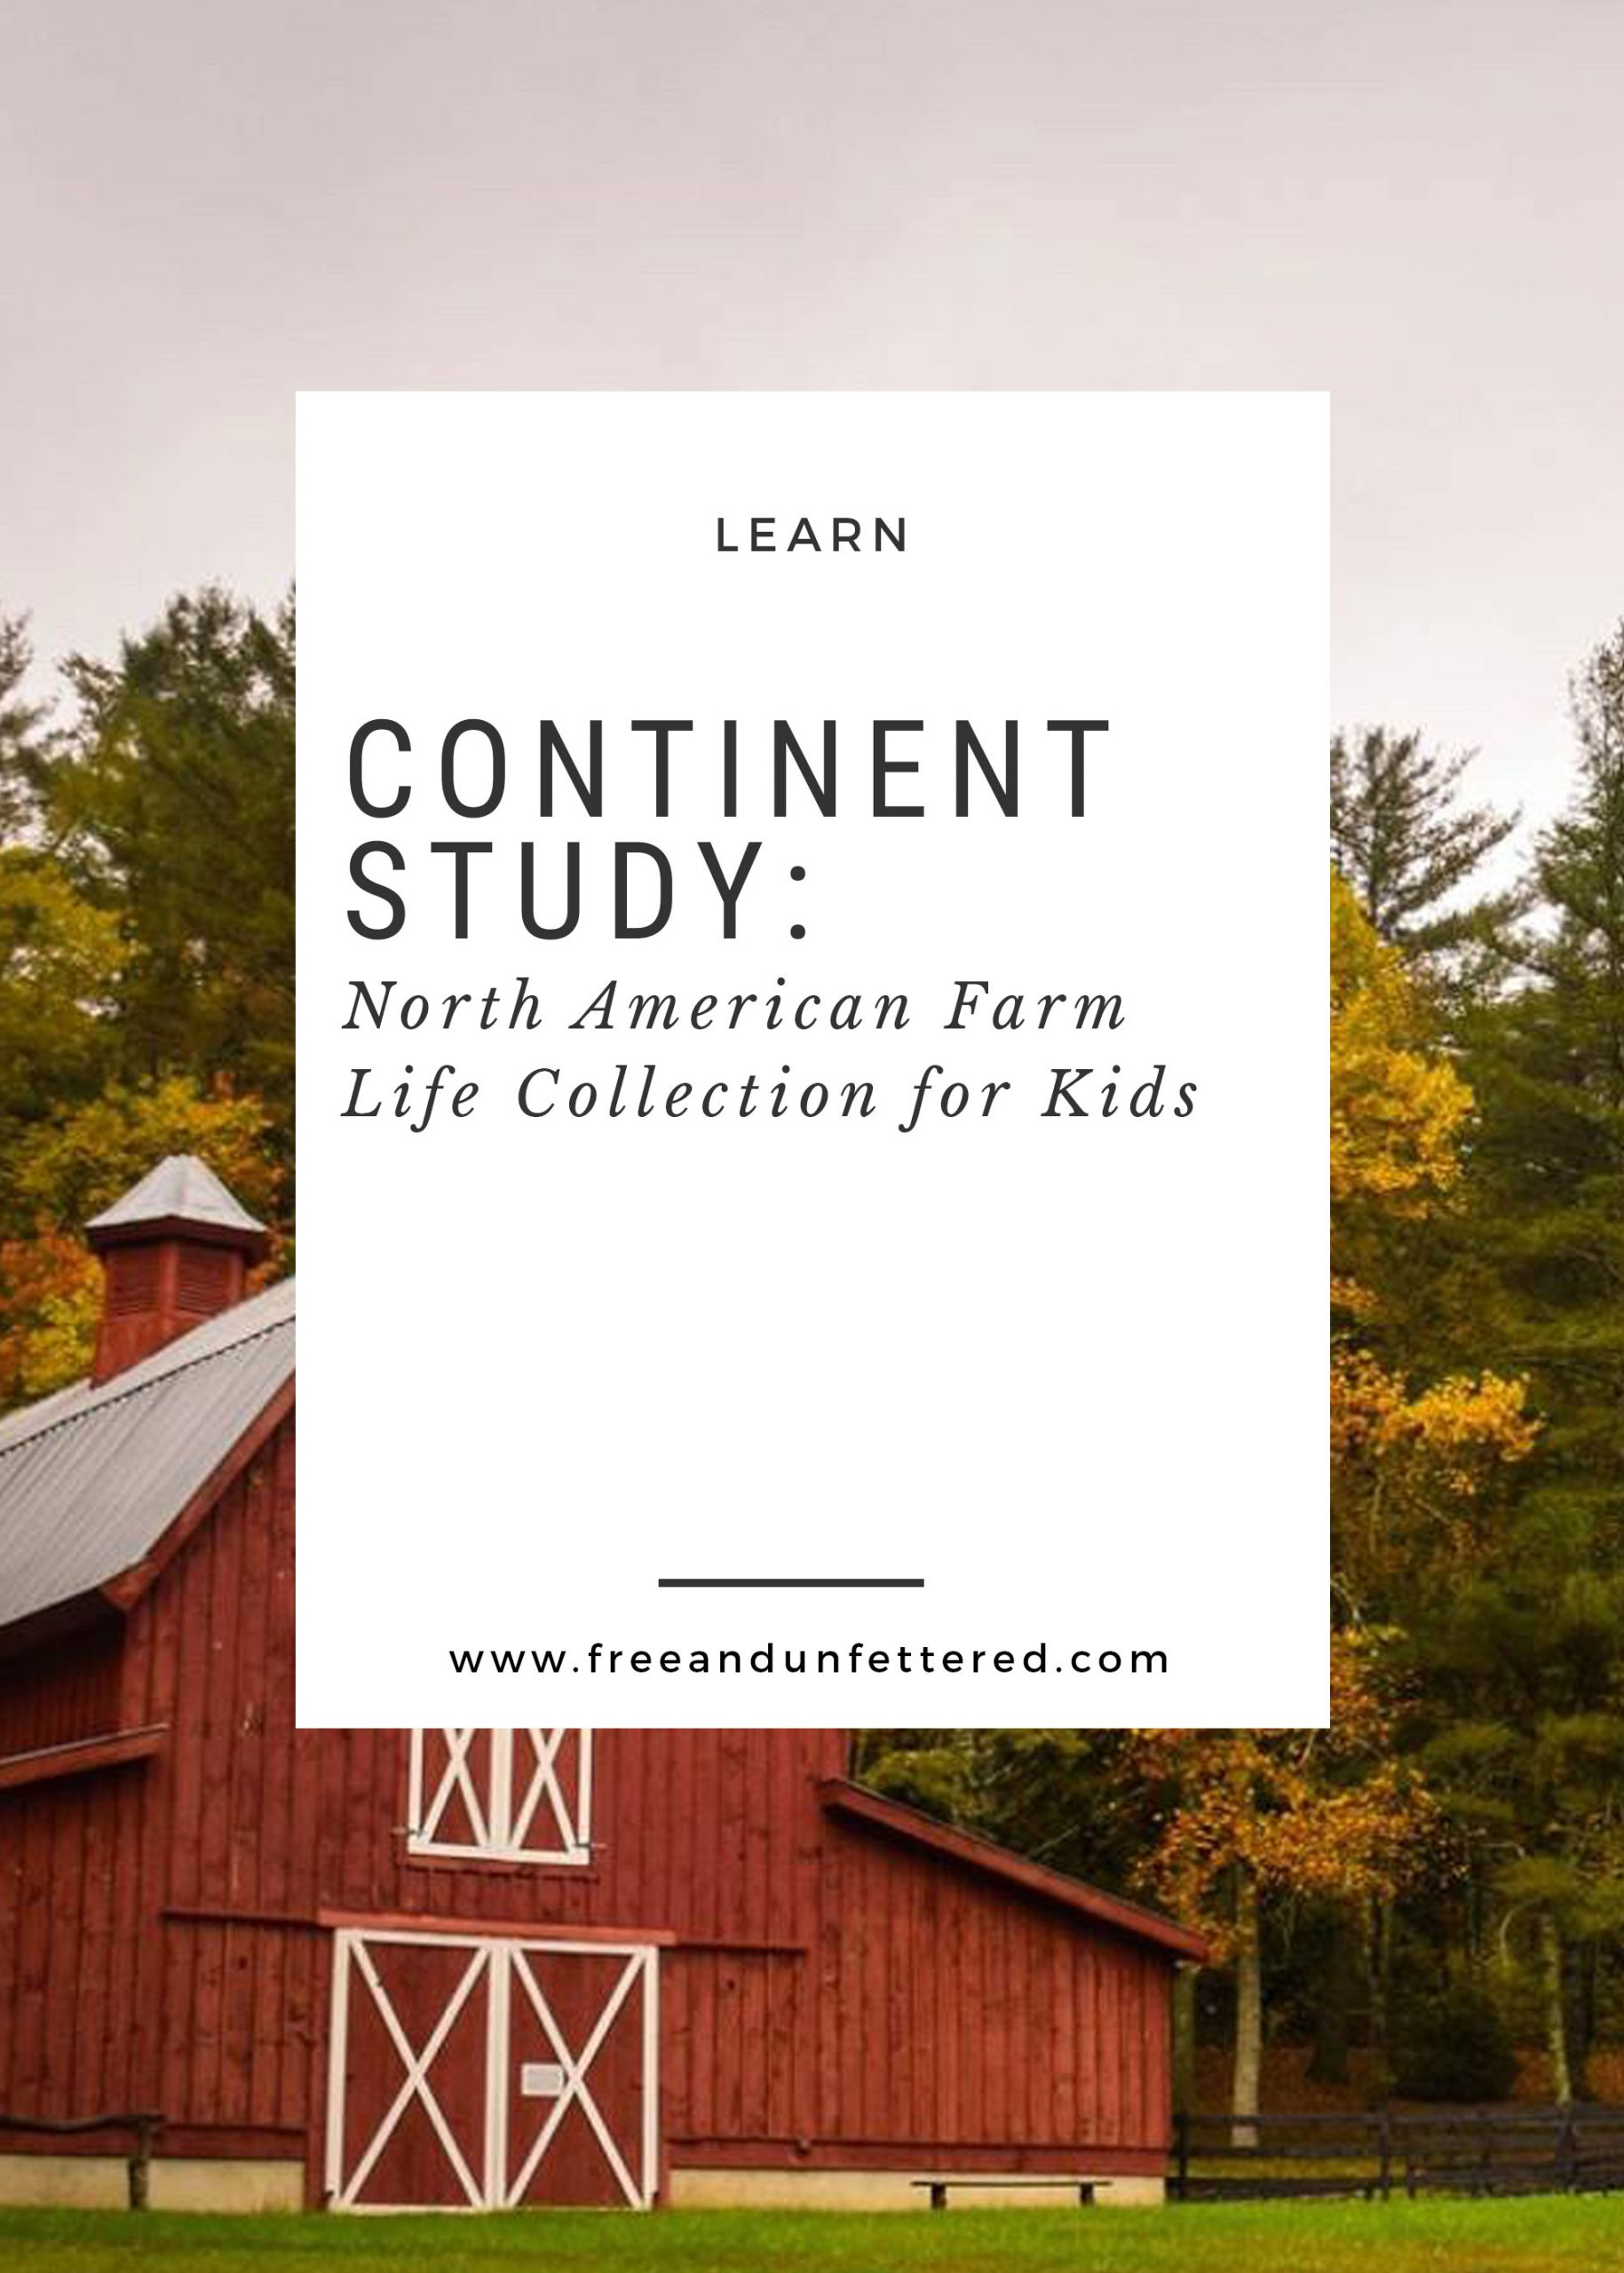 Continent Study: North American Farm Life Collection